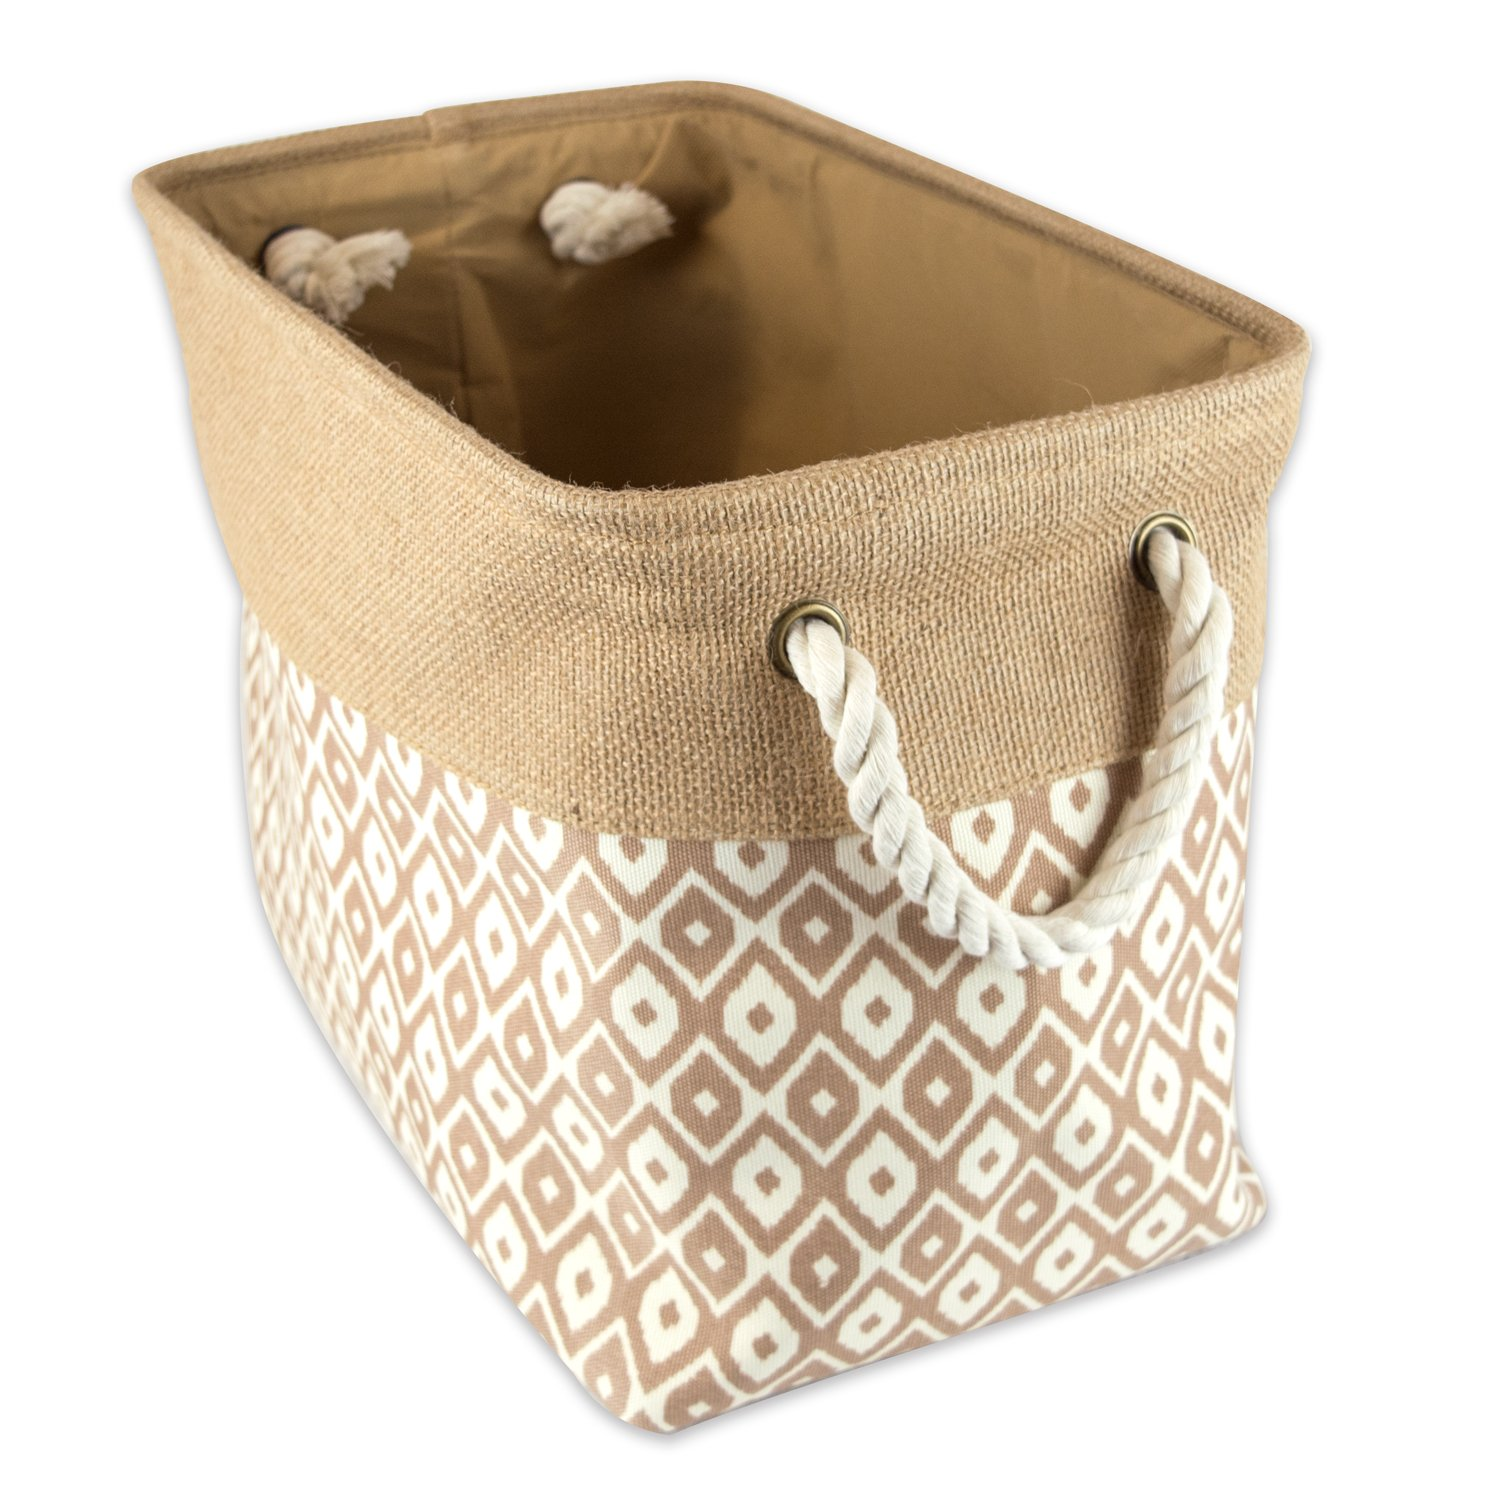 DII Collapsible Burlap Storage Basket or Bin with Durable Cotton Handles, Home Organizational Solution for Office, Bedroom, Closet, Toys, & Laundry (Small - 14x8x9'), Diamond Bronze & Laundry (Small - 14x8x9) CAMZ37146